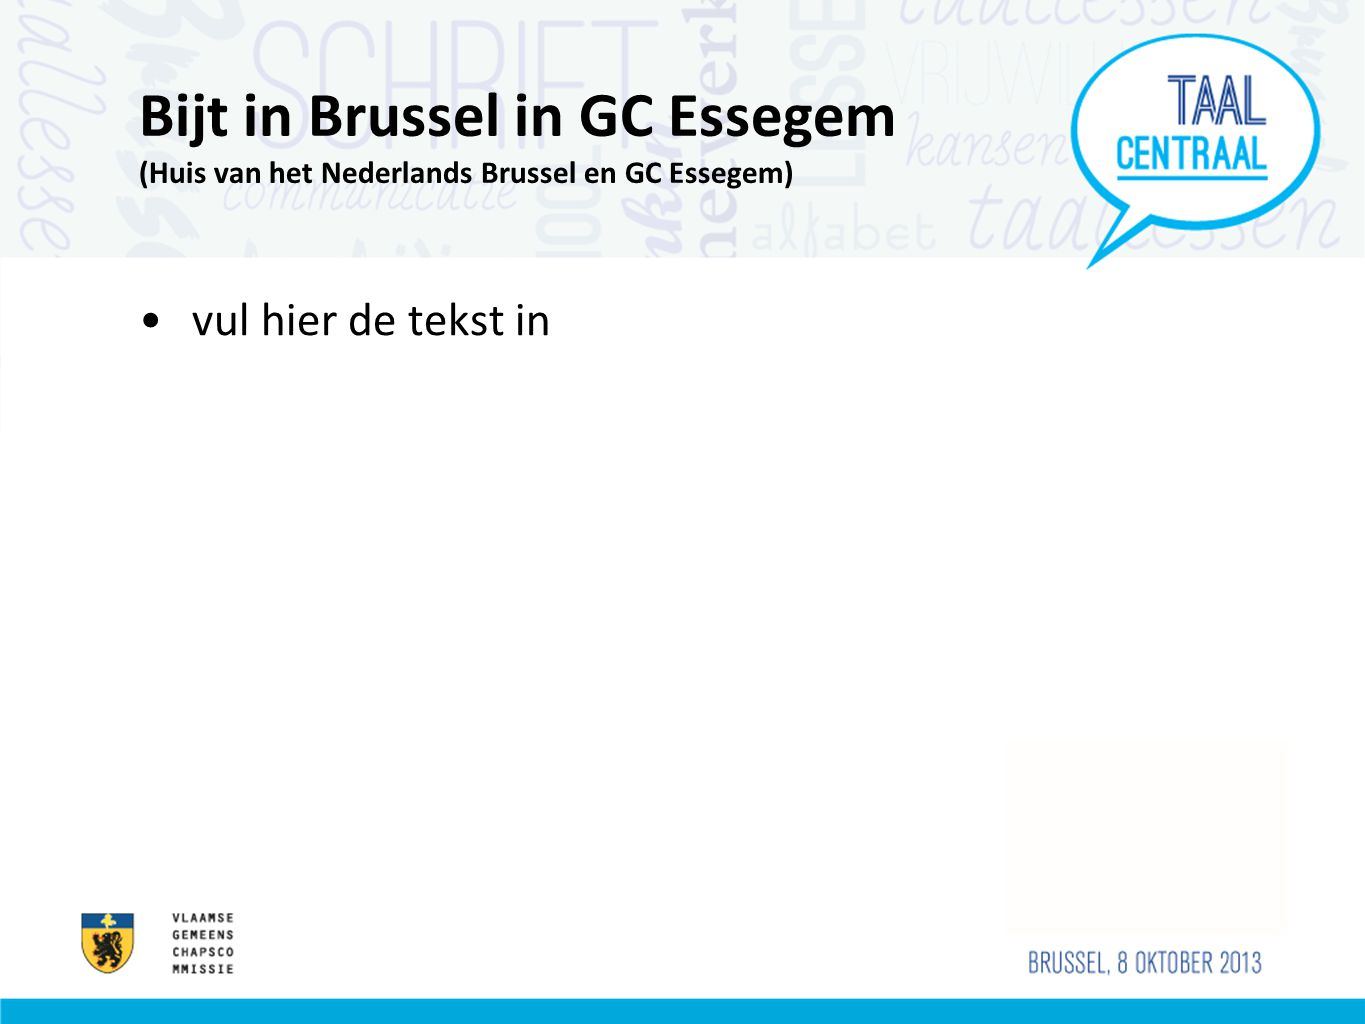 Bijt in Brussel in GC Essegem (Huis van het Nederlands Brussel en GC Essegem) vul hier de tekst in